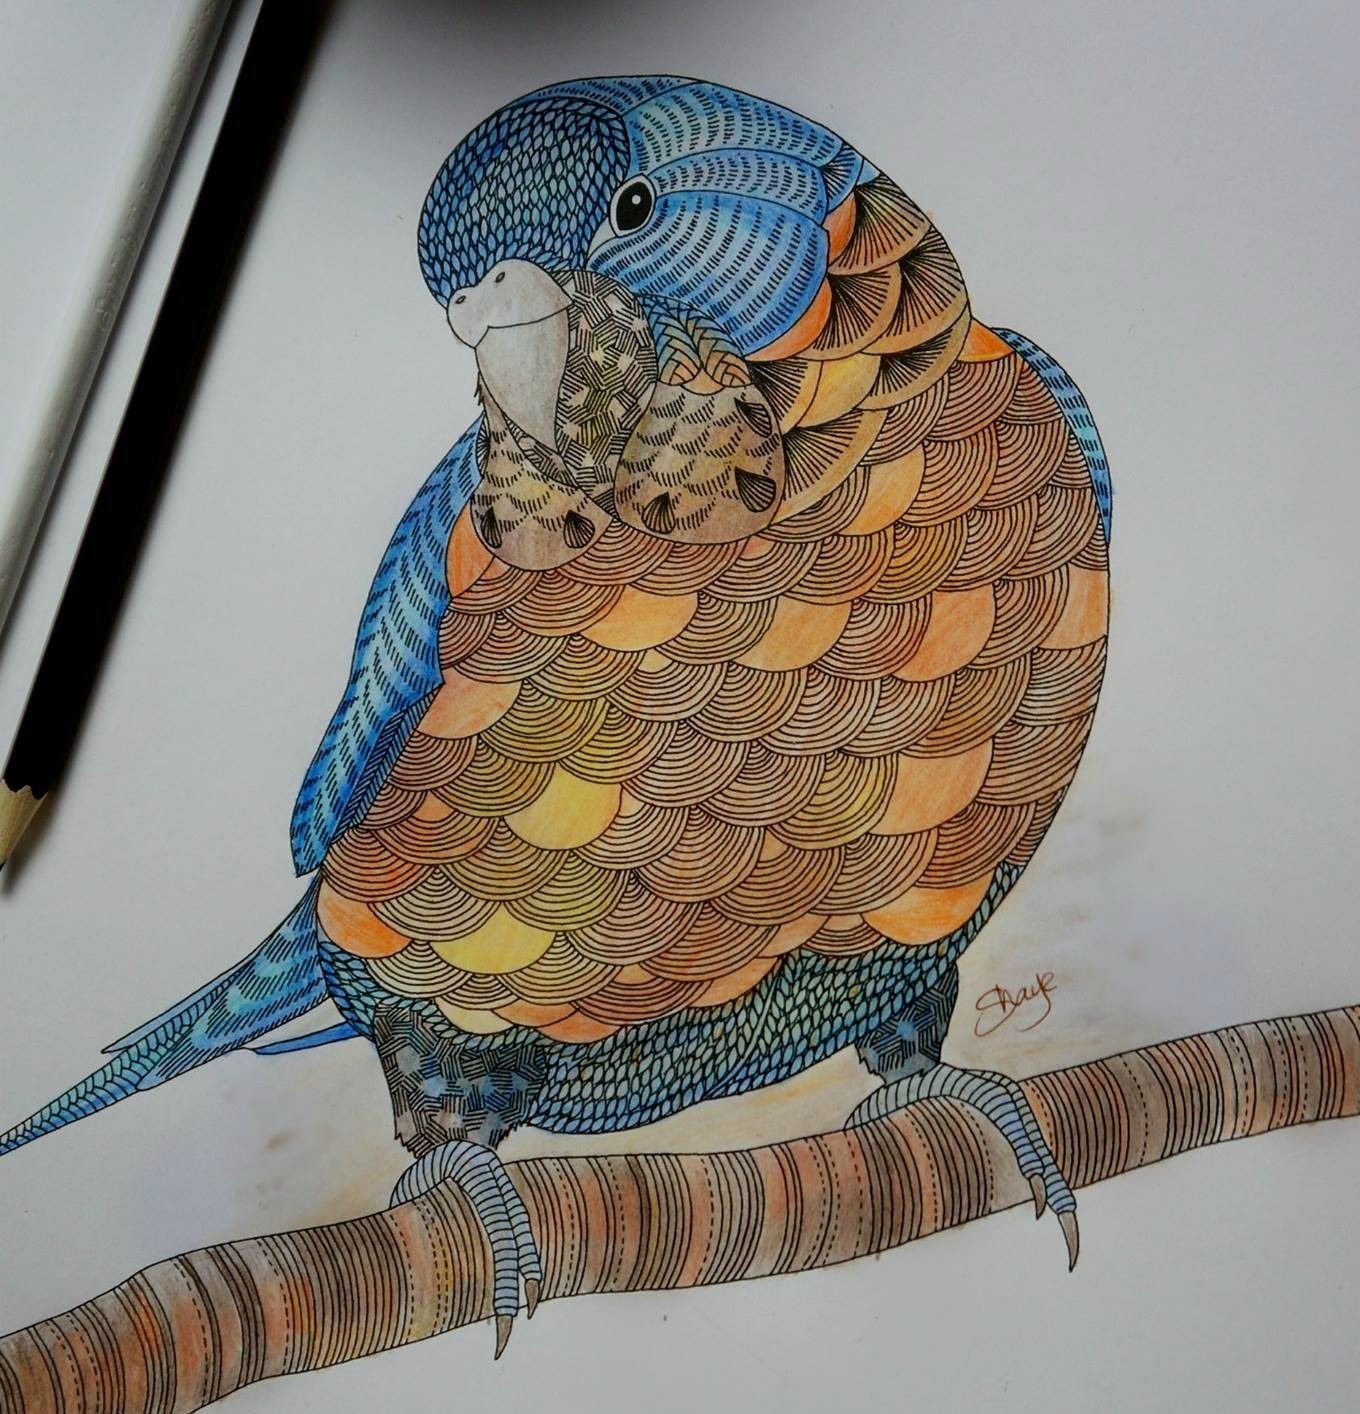 Millie Marotta S Animal Kingdom Bird Colouring With Vaseline Blending Millie Marotta Animal Kingdom Animal Kingdom Colouring Book Animal Coloring Books